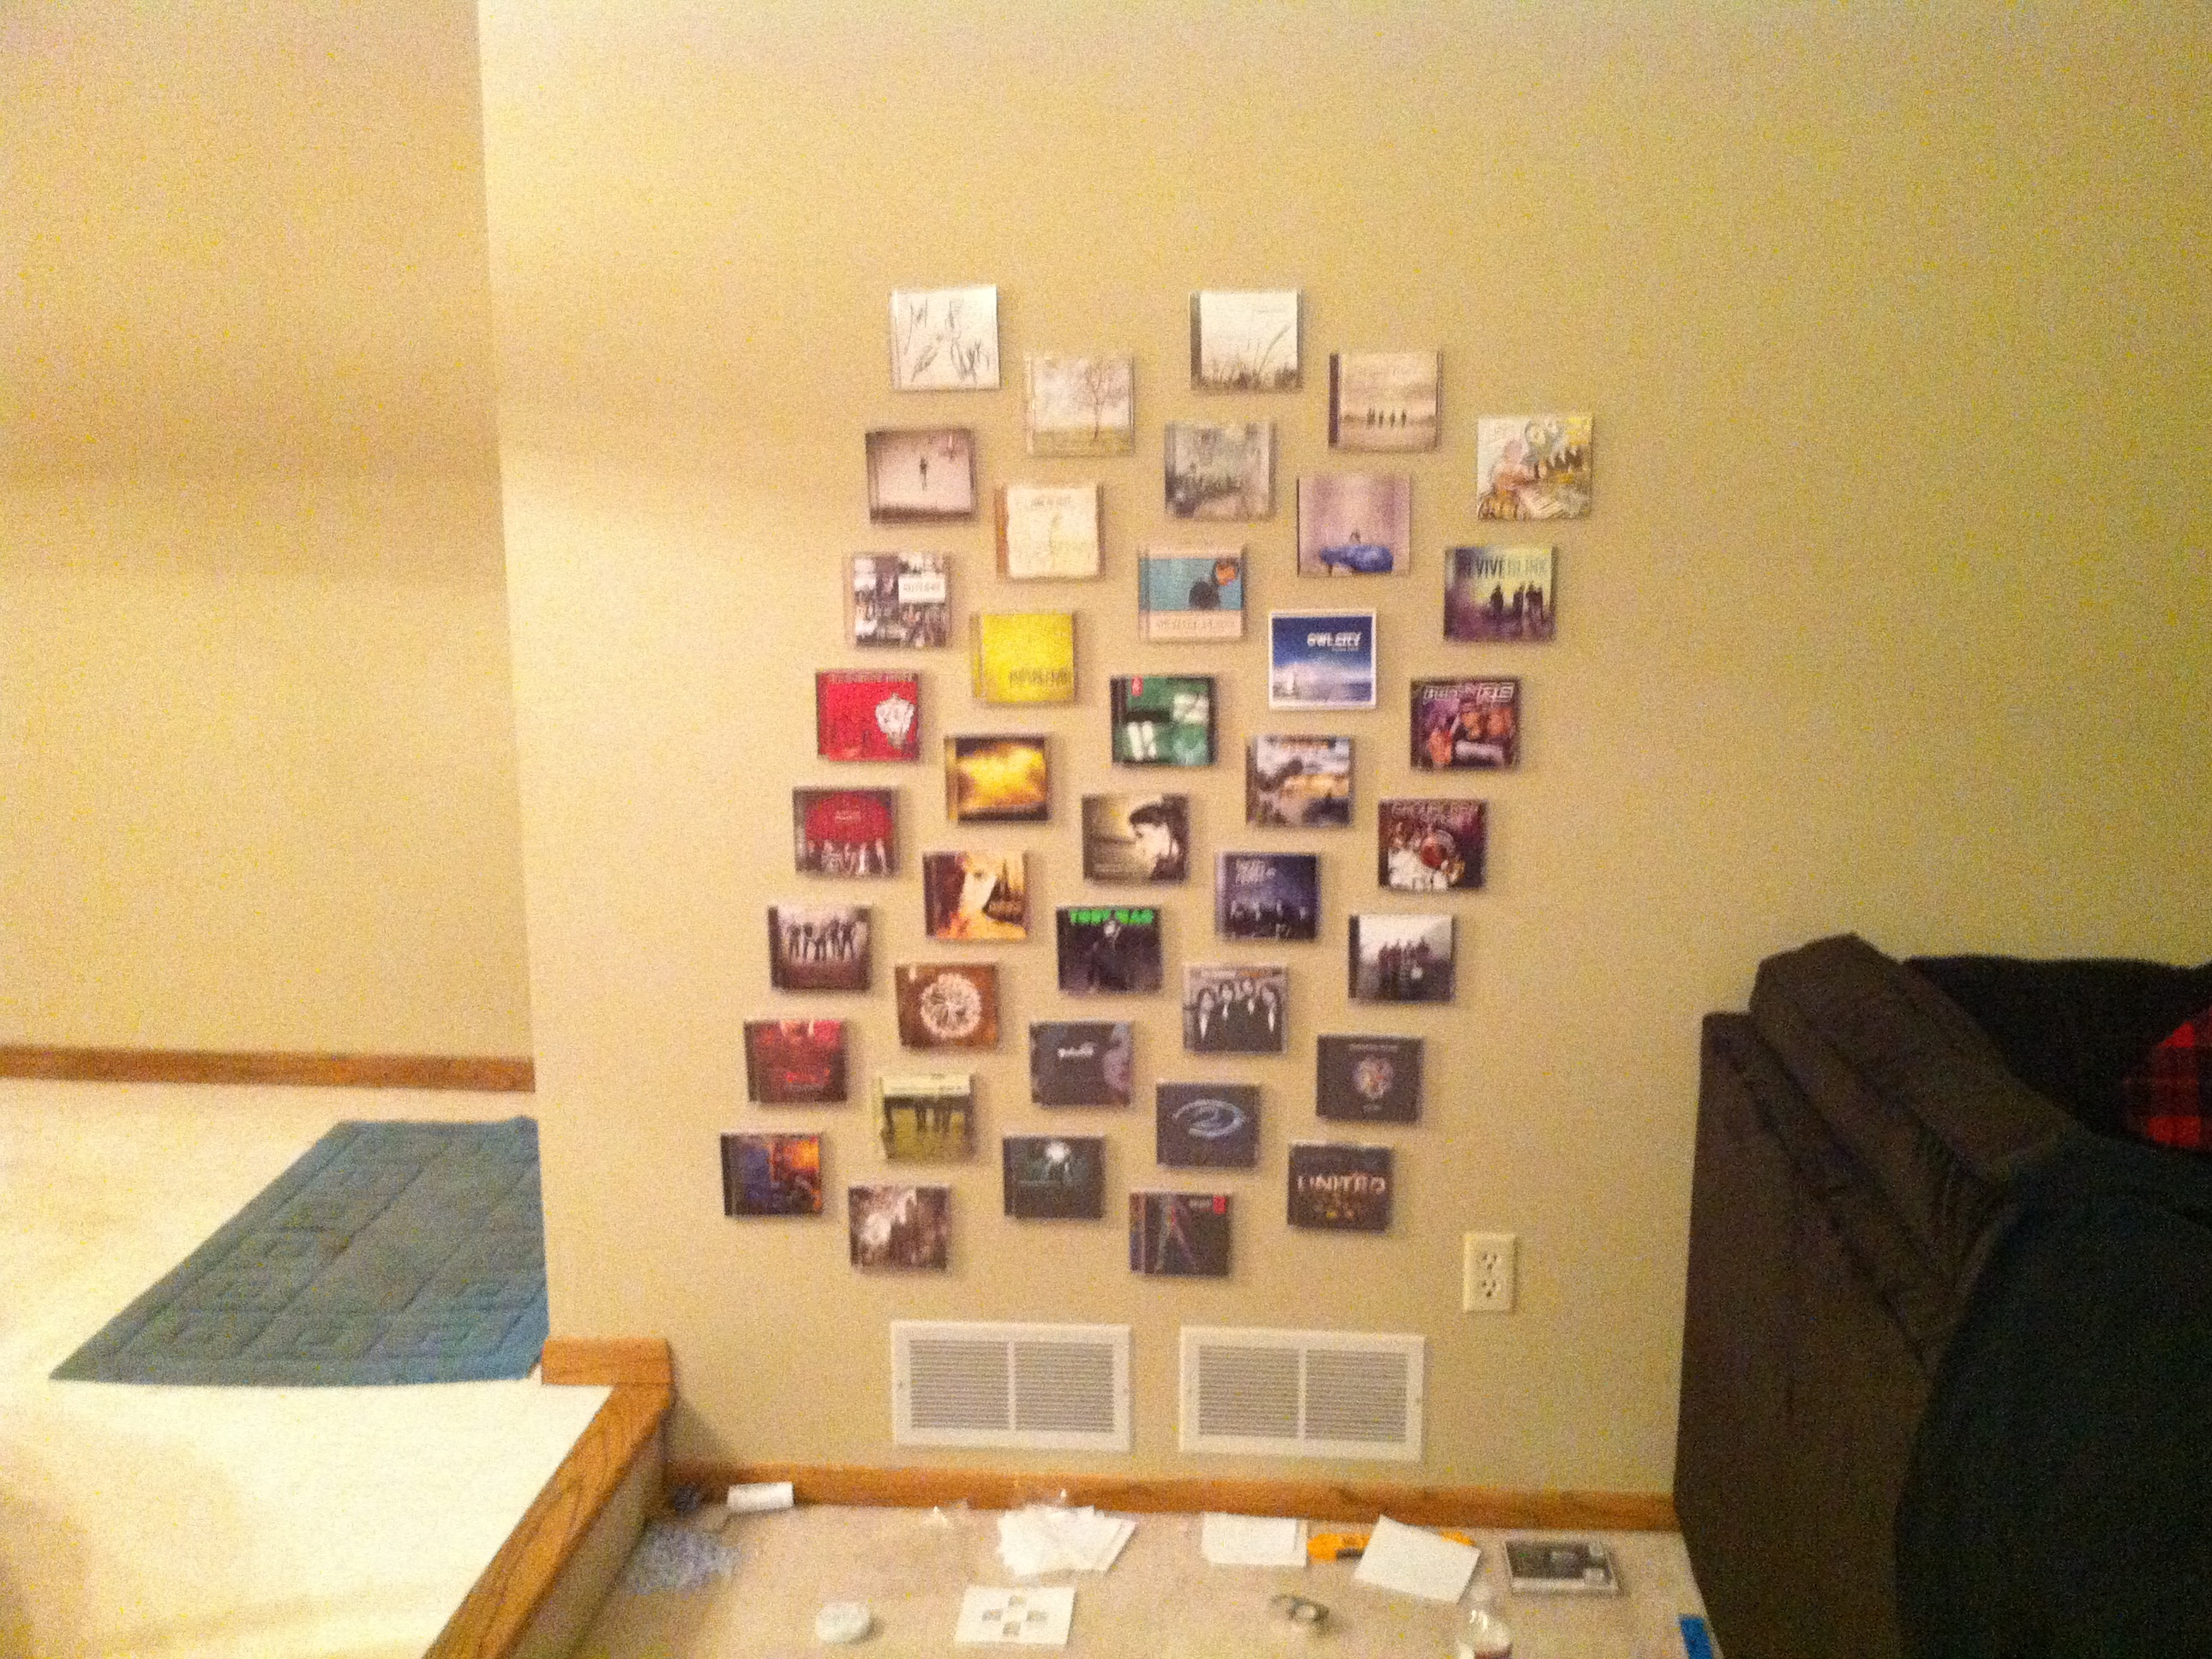 Interactive Wall of CDs